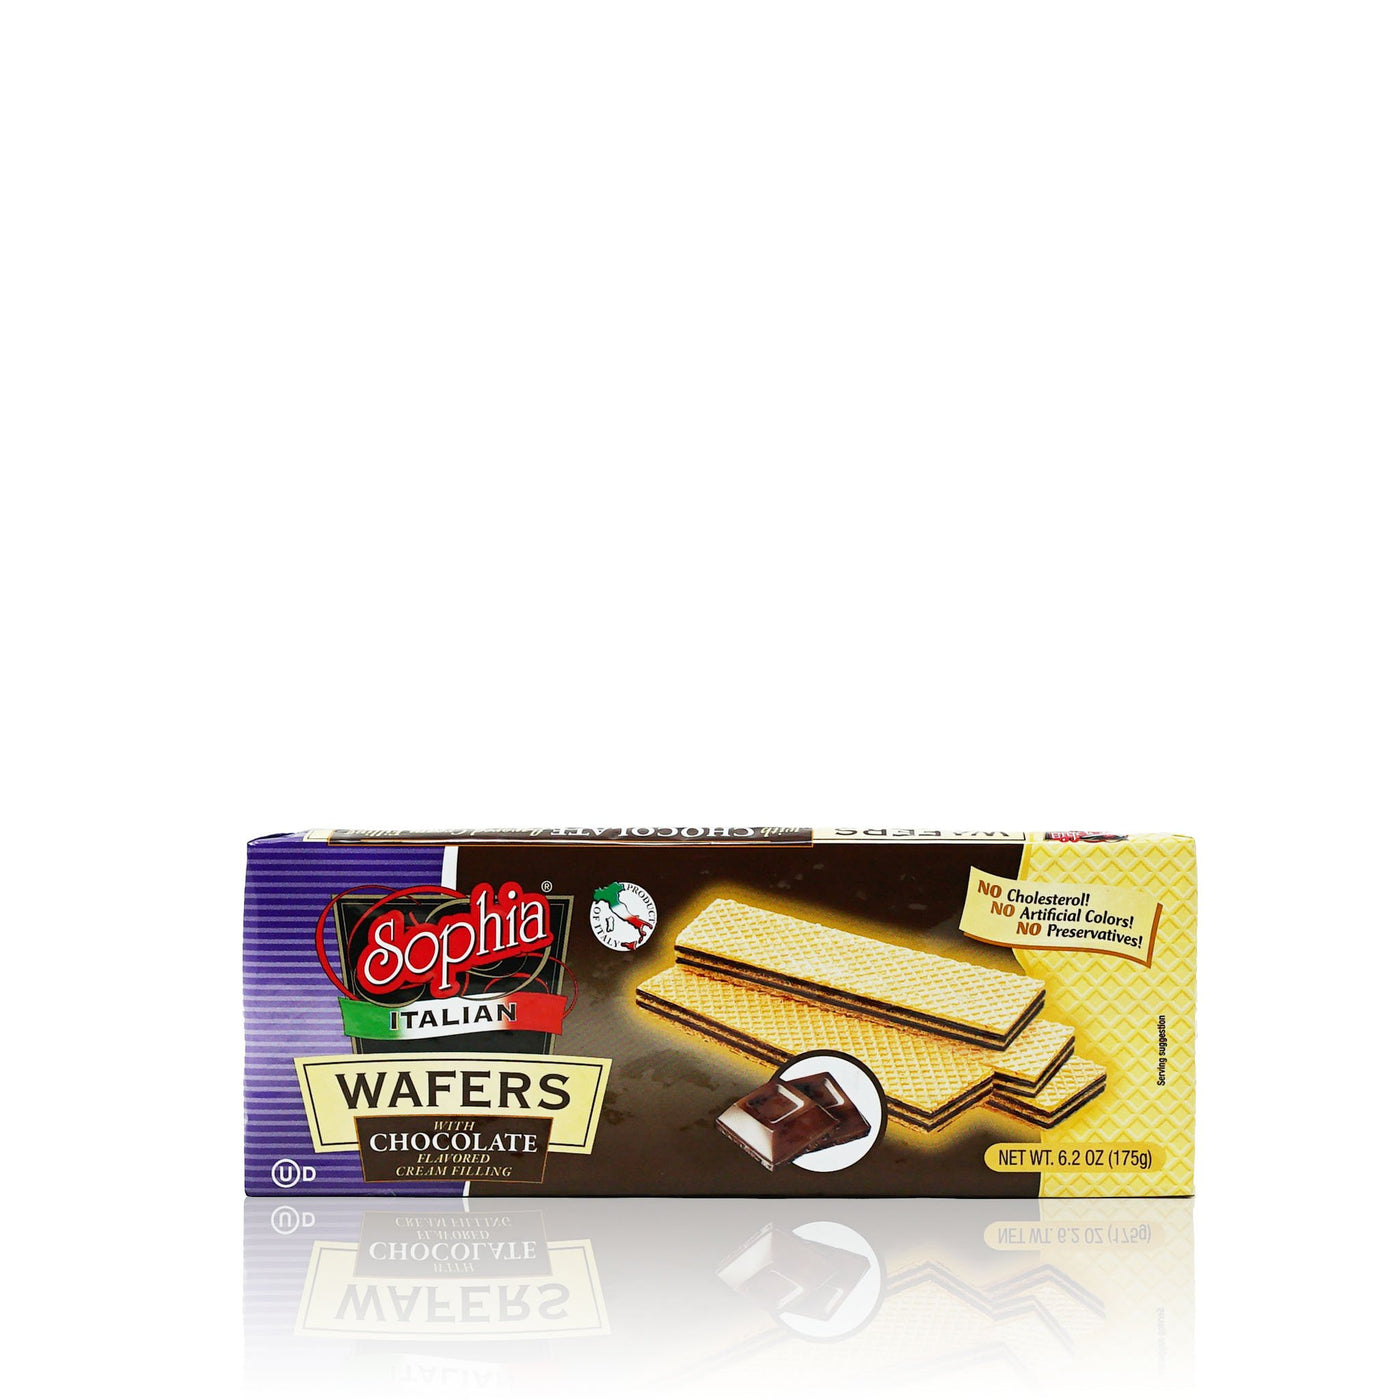 Sophia Wafers-Italian Wafer Fingers, Chocolate 6.2oz-3 pack